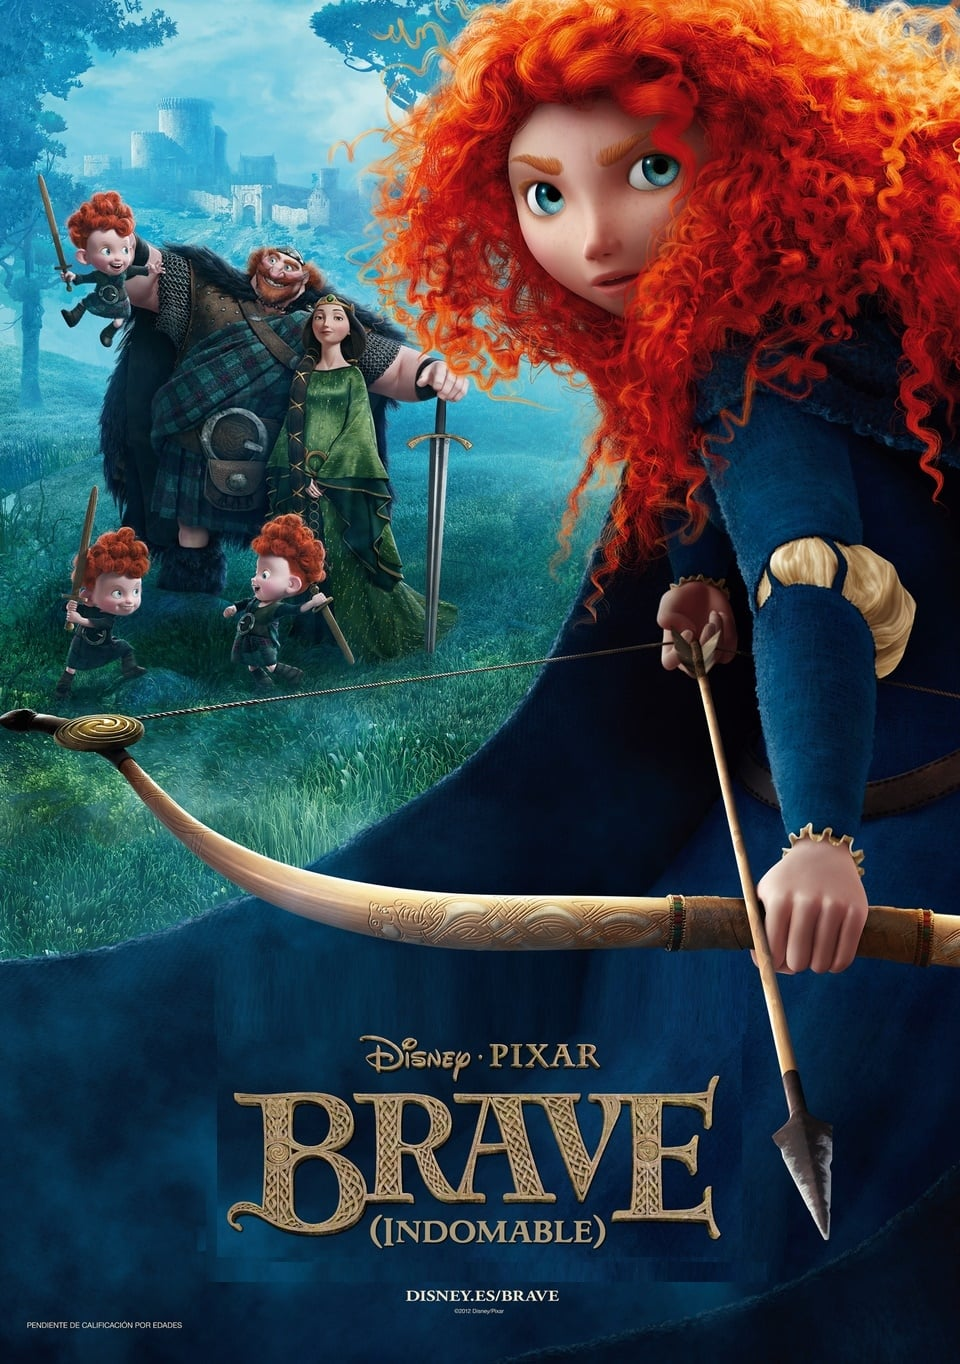 Póster Brave (Indomable)